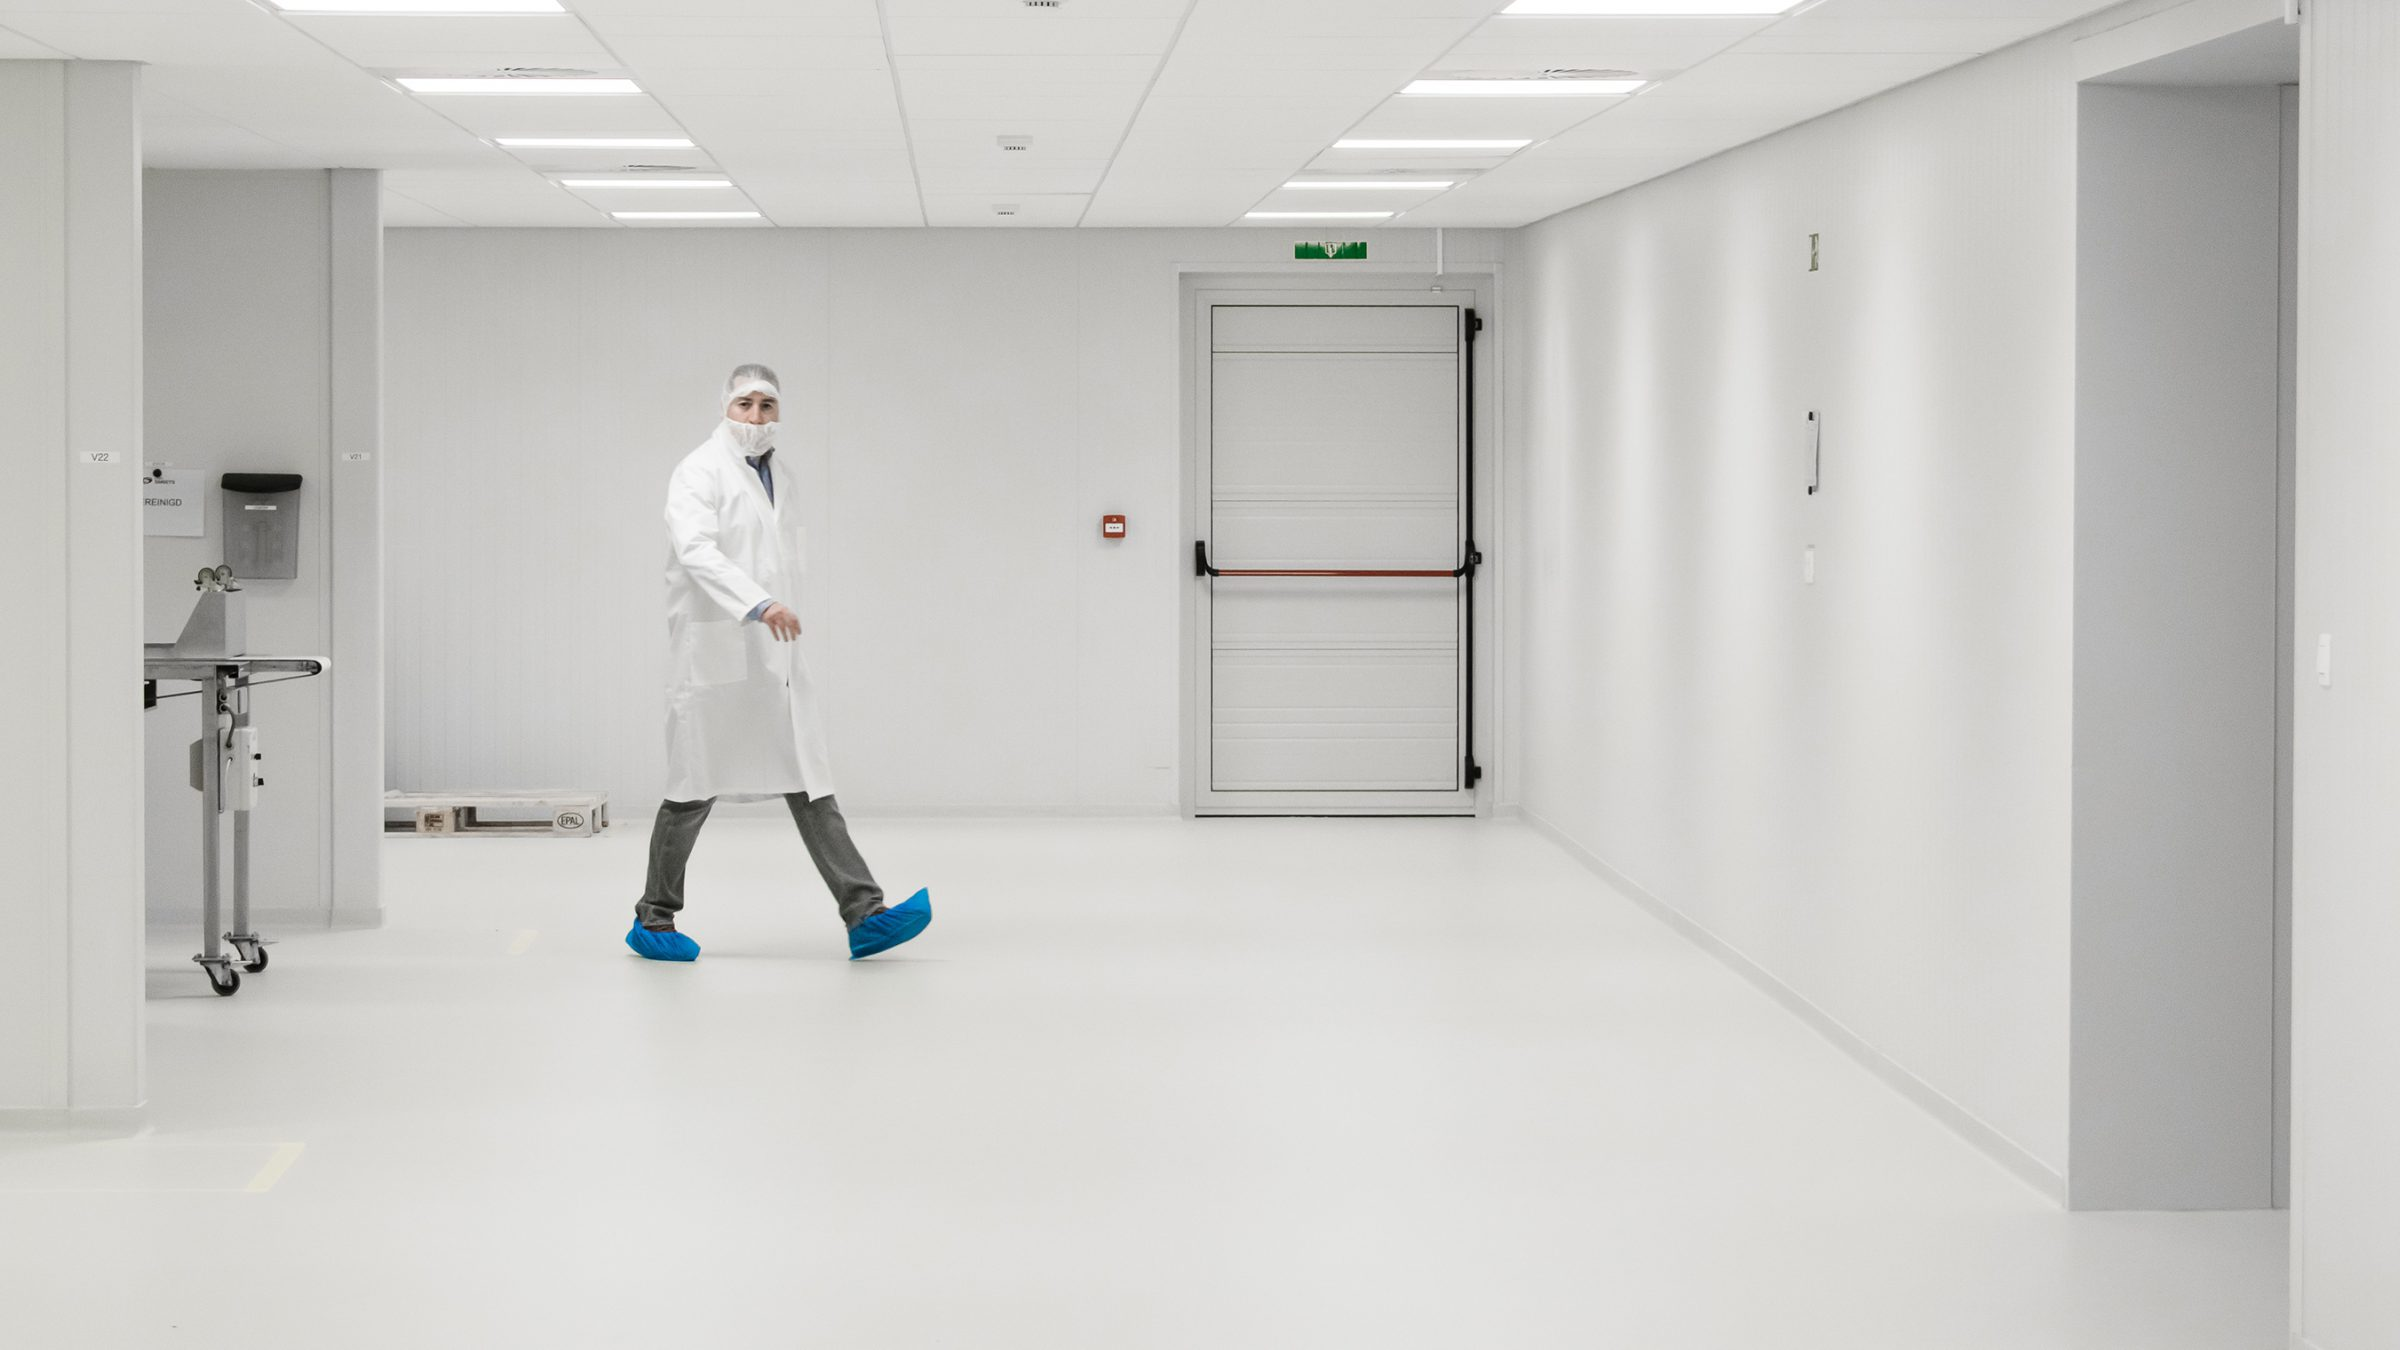 Man walking in cleanroom small